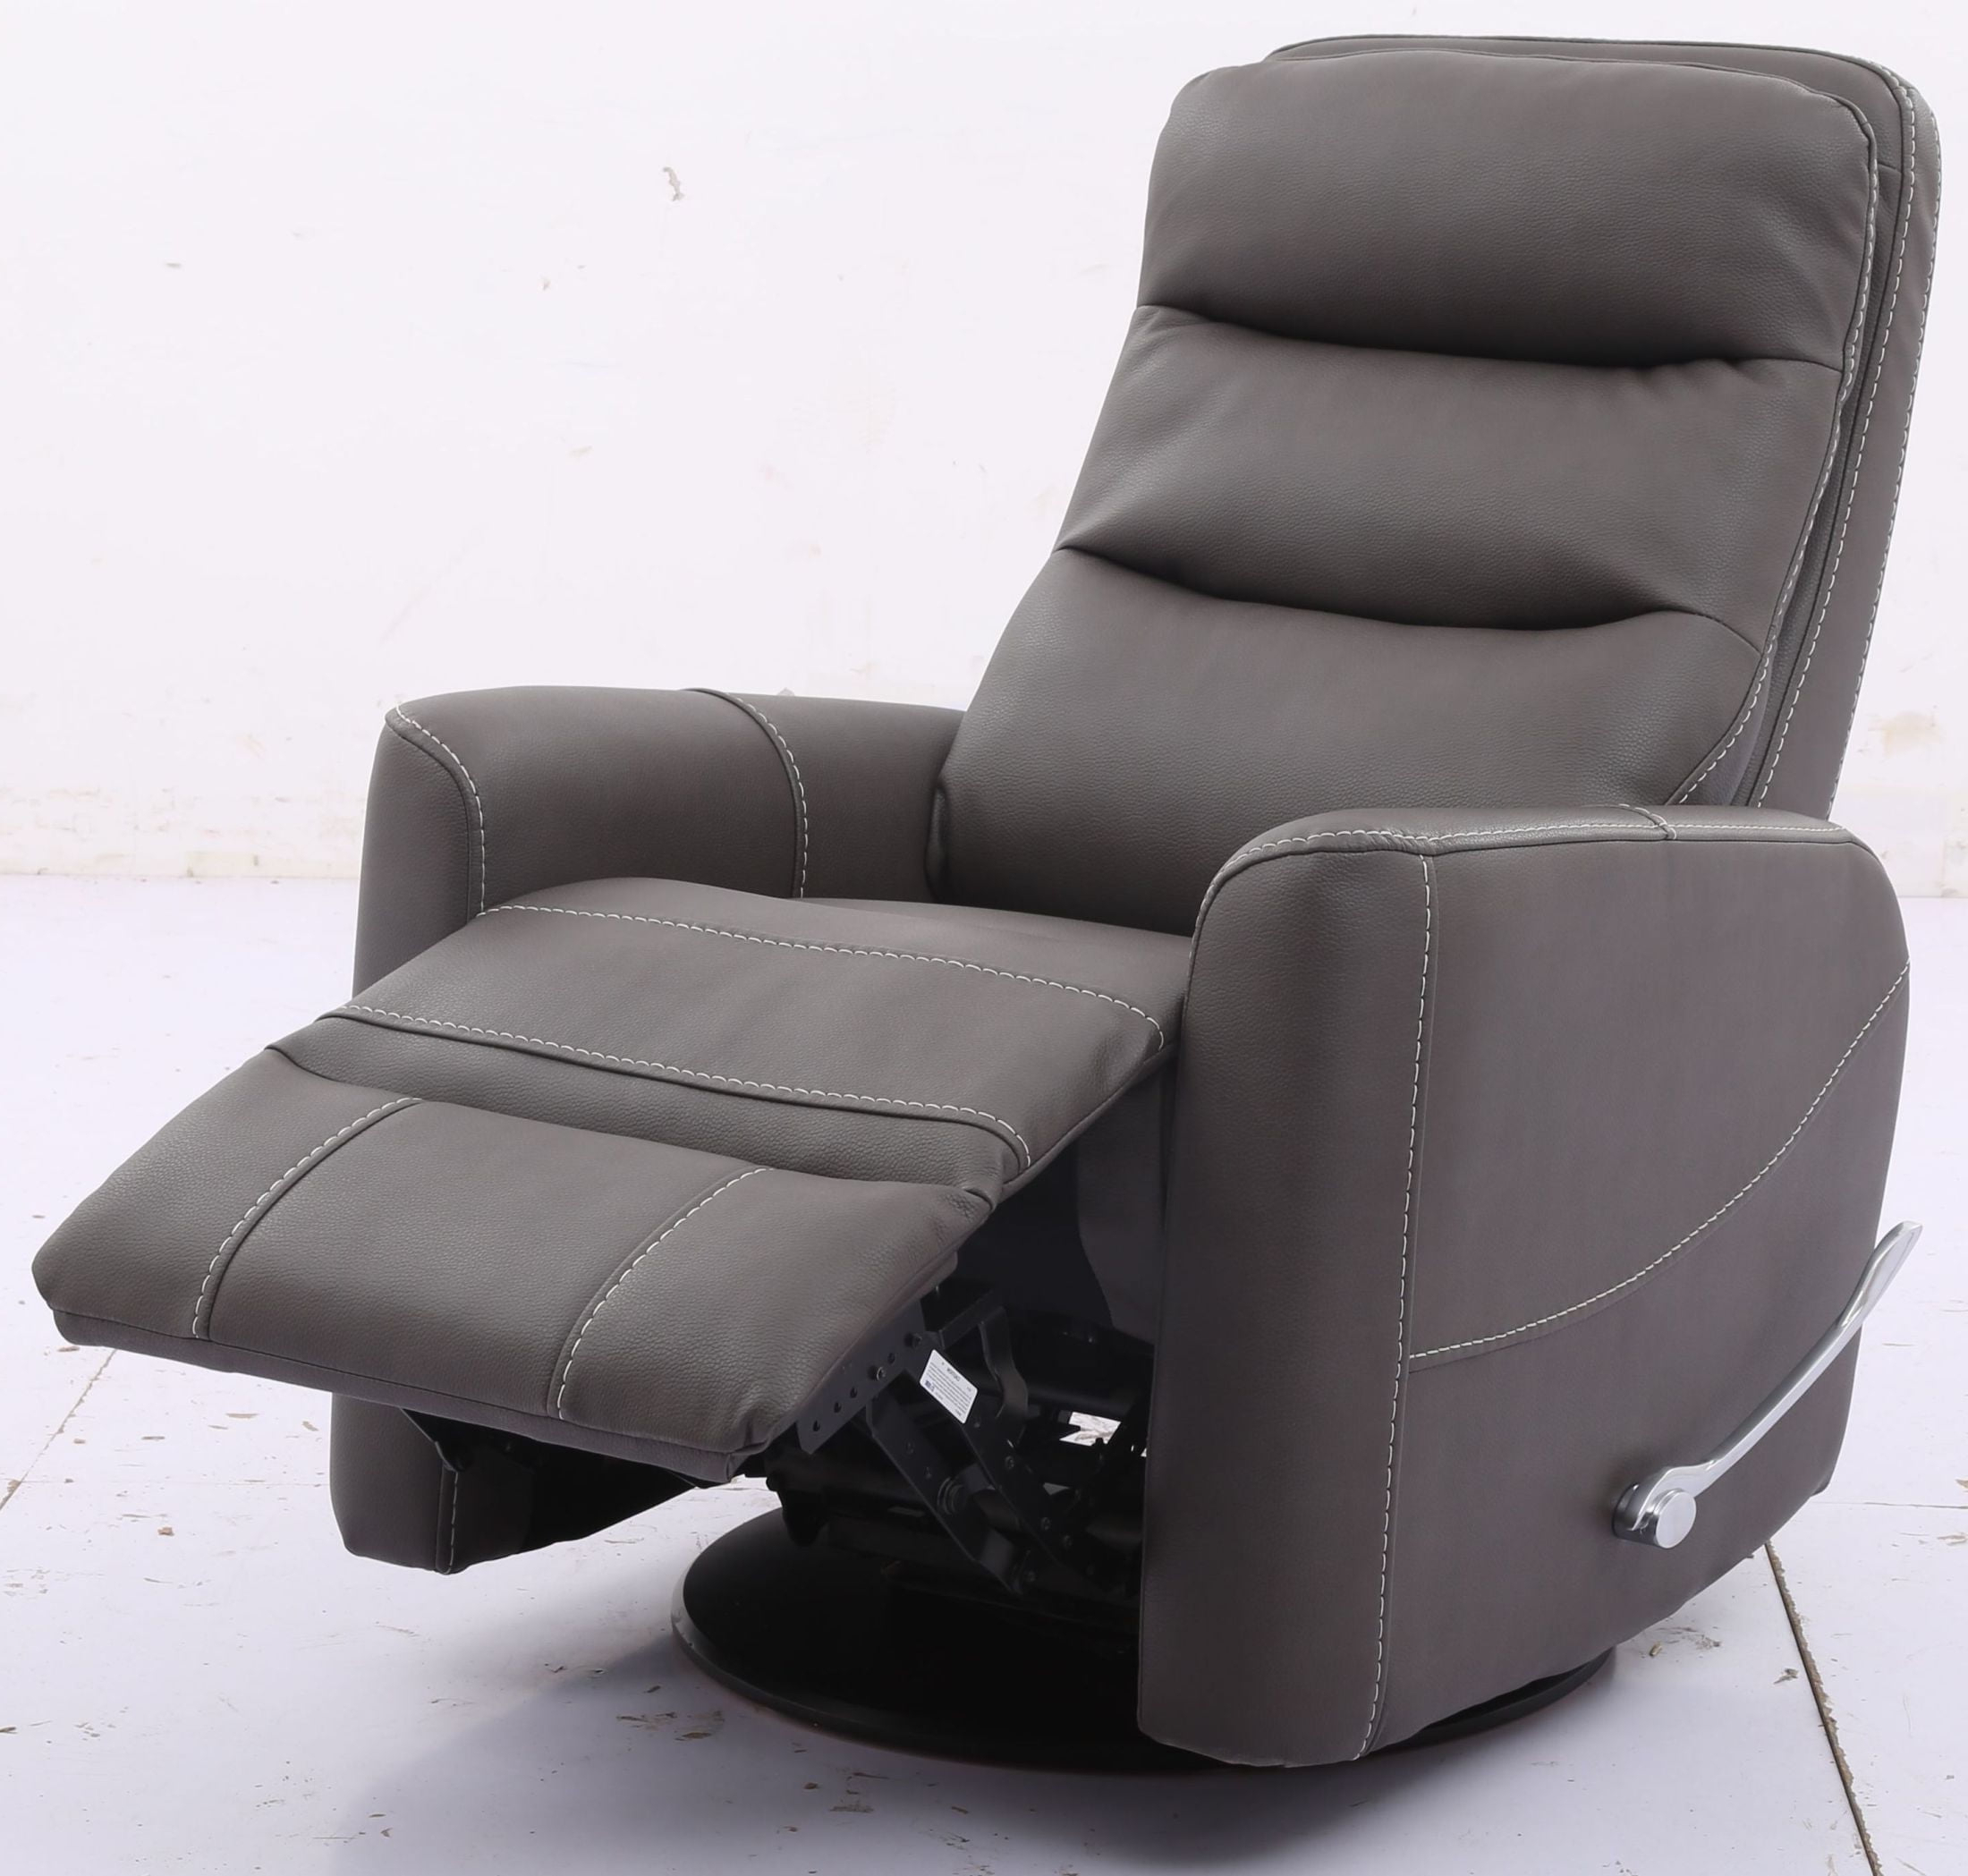 Hercules Haze Swivel Glider Recliner With Articulating Headrest From With Regard To Most Recently Released Hercules Chocolate Swivel Glider Recliners (Gallery 20 of 20)